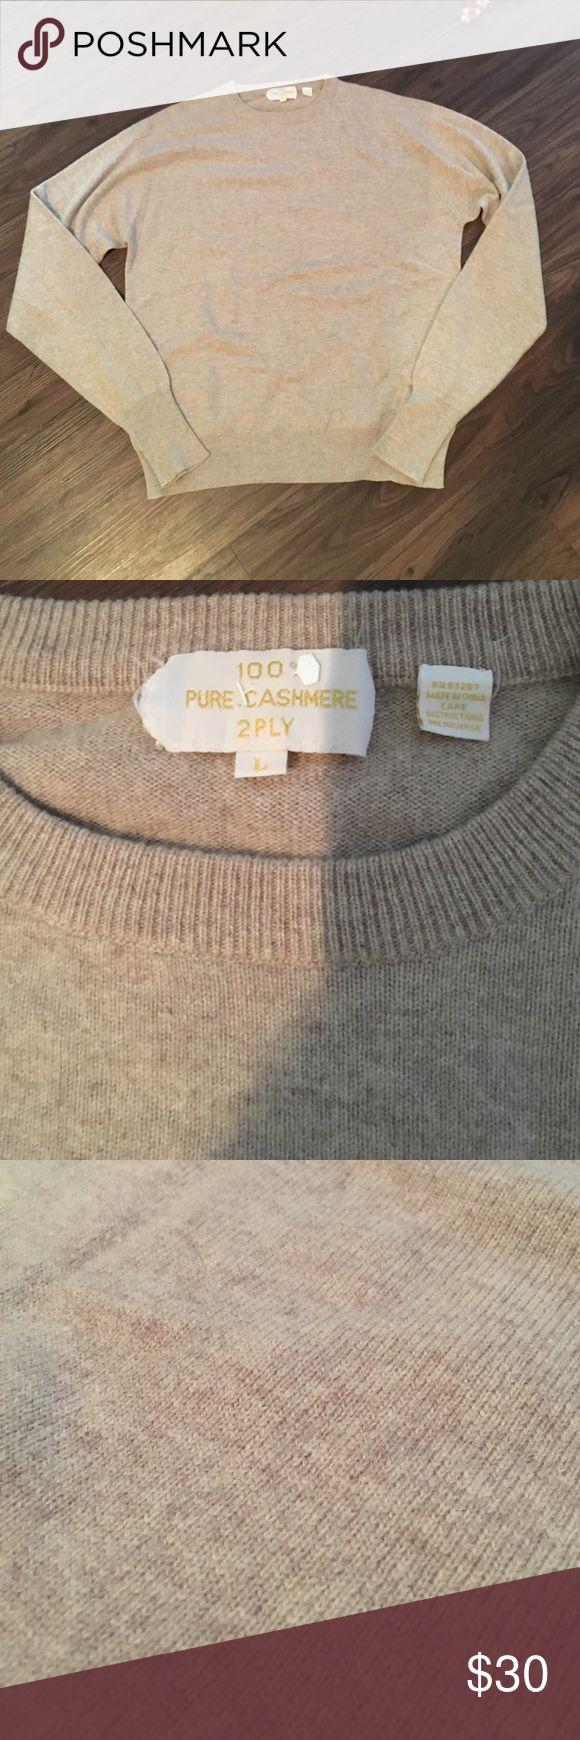 Men's cashmere sweater Size L oatmeal cashmere sweater. Recently dry cleaned, no snags or holes. Sweaters Crewneck